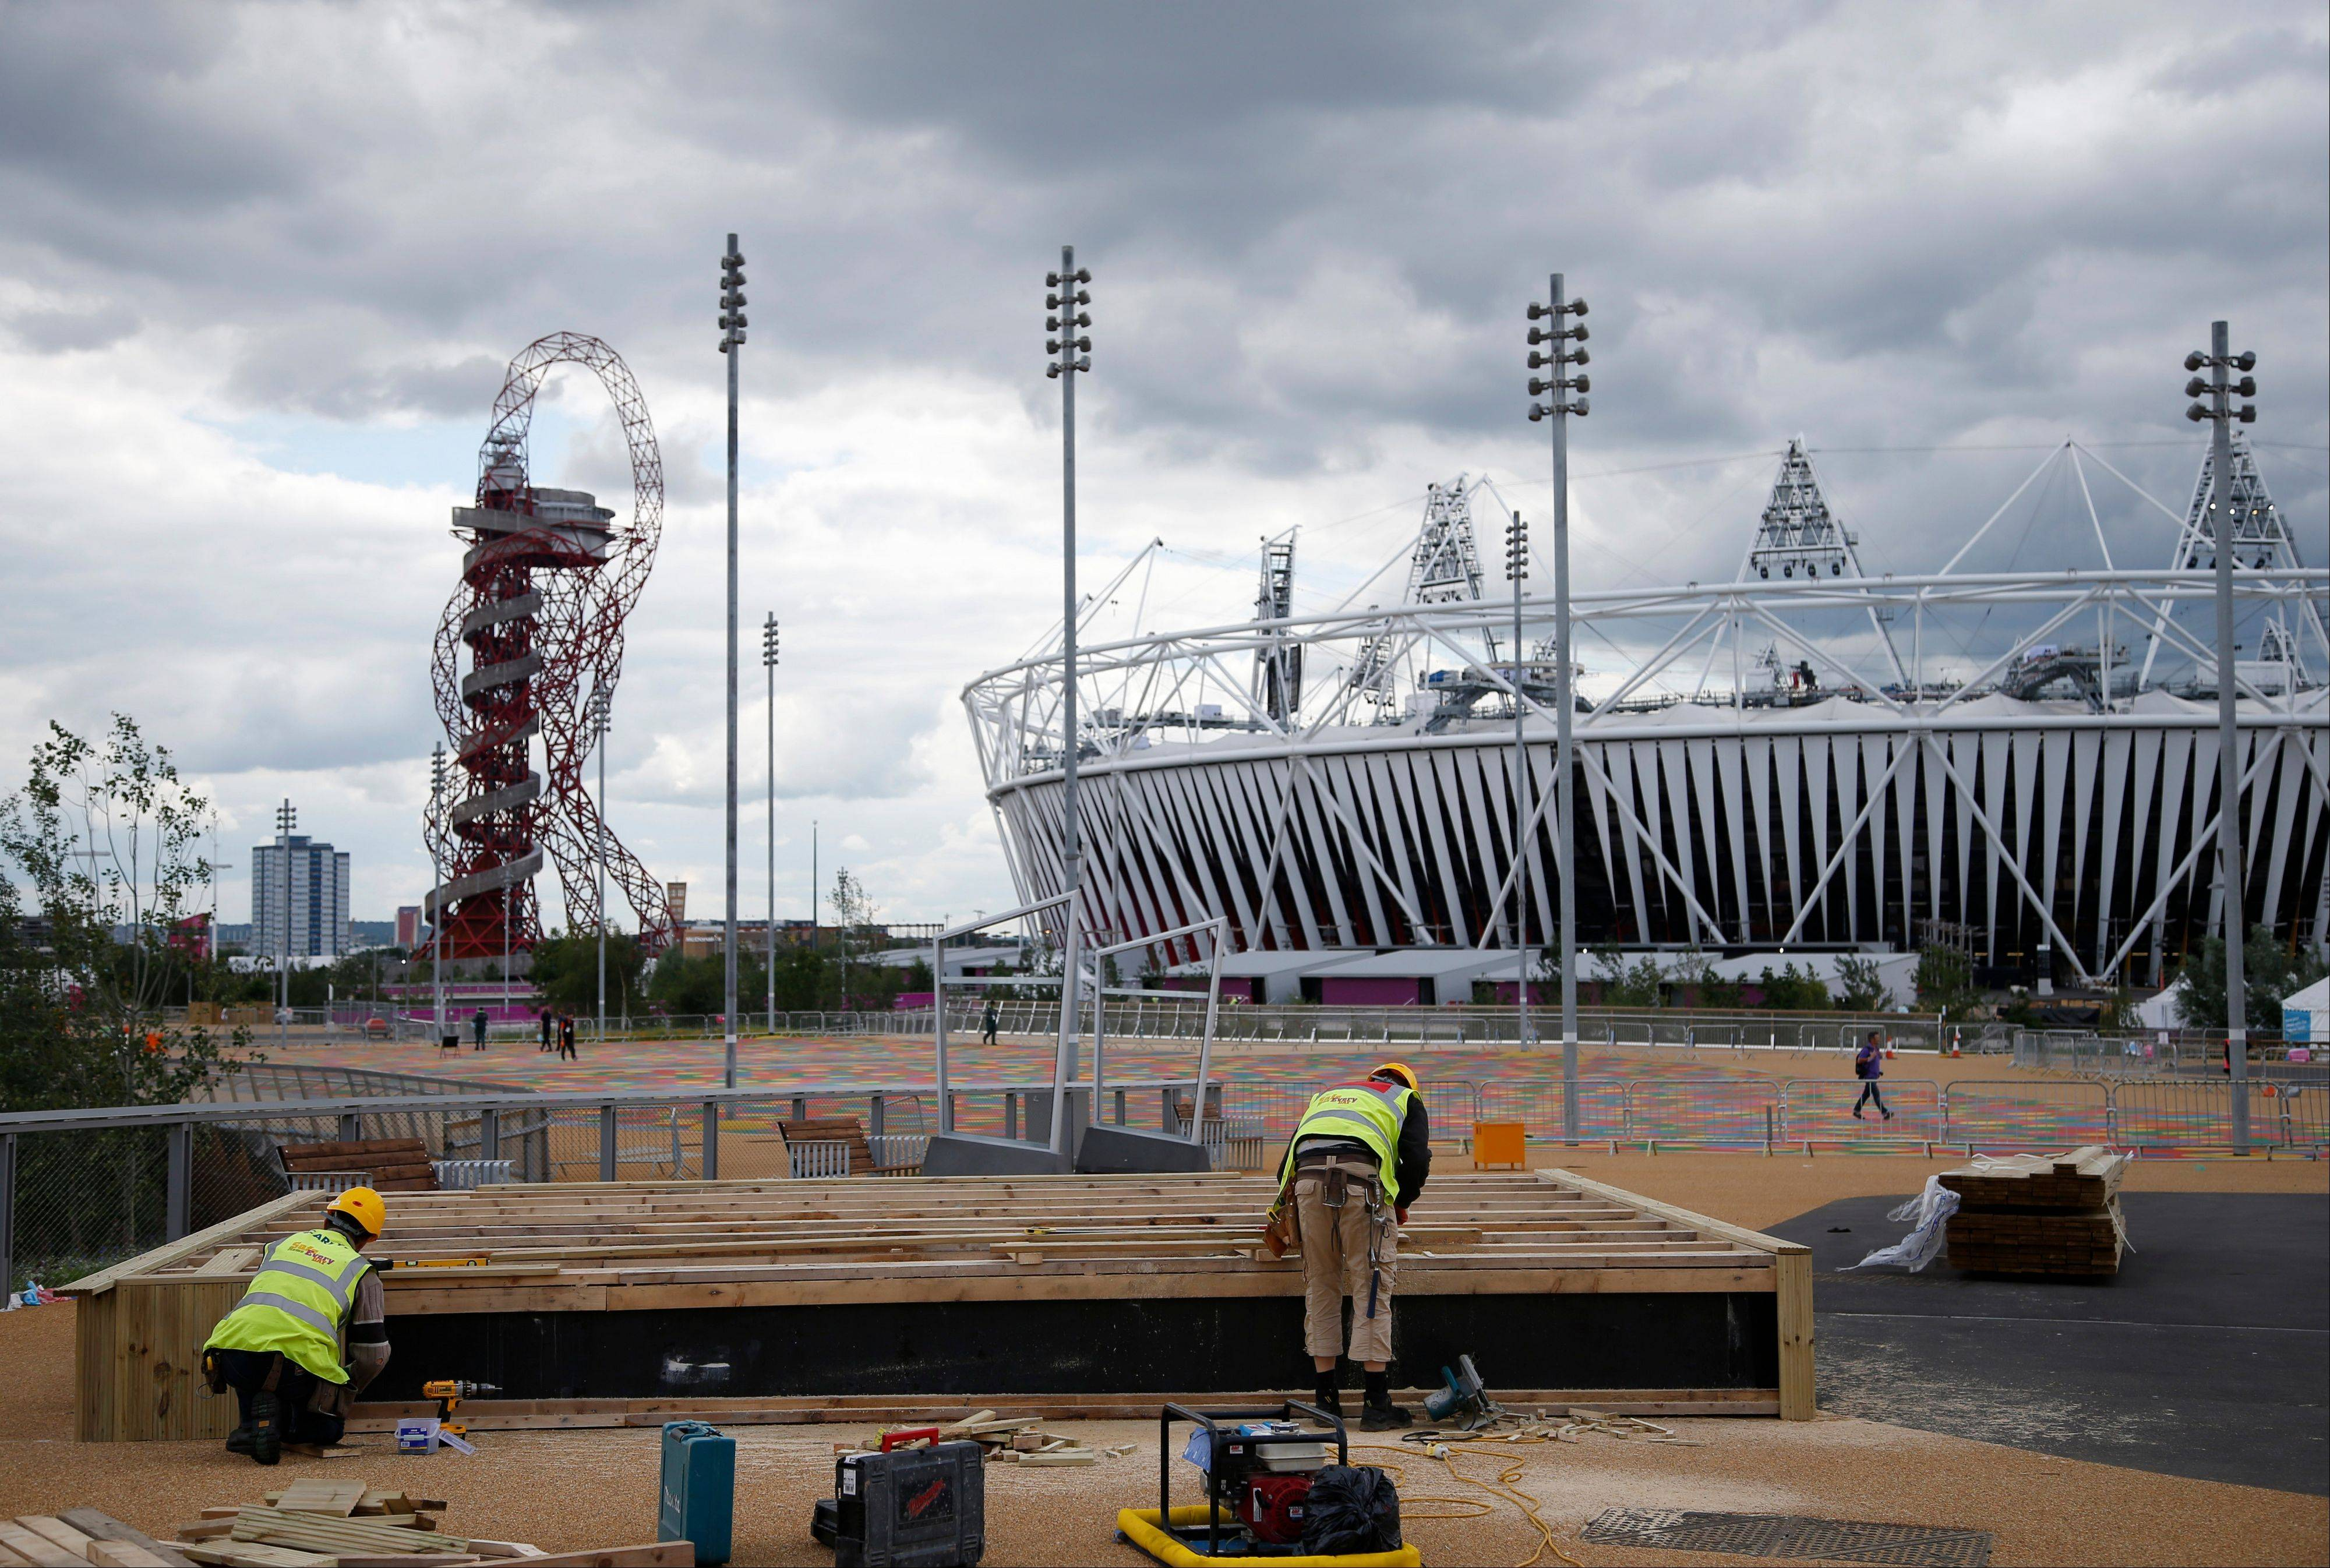 Construction crews work outside the Olympic Stadium Sunday as preparations continue for the 2012 Summer Olympics in London. At left is the Orbit.